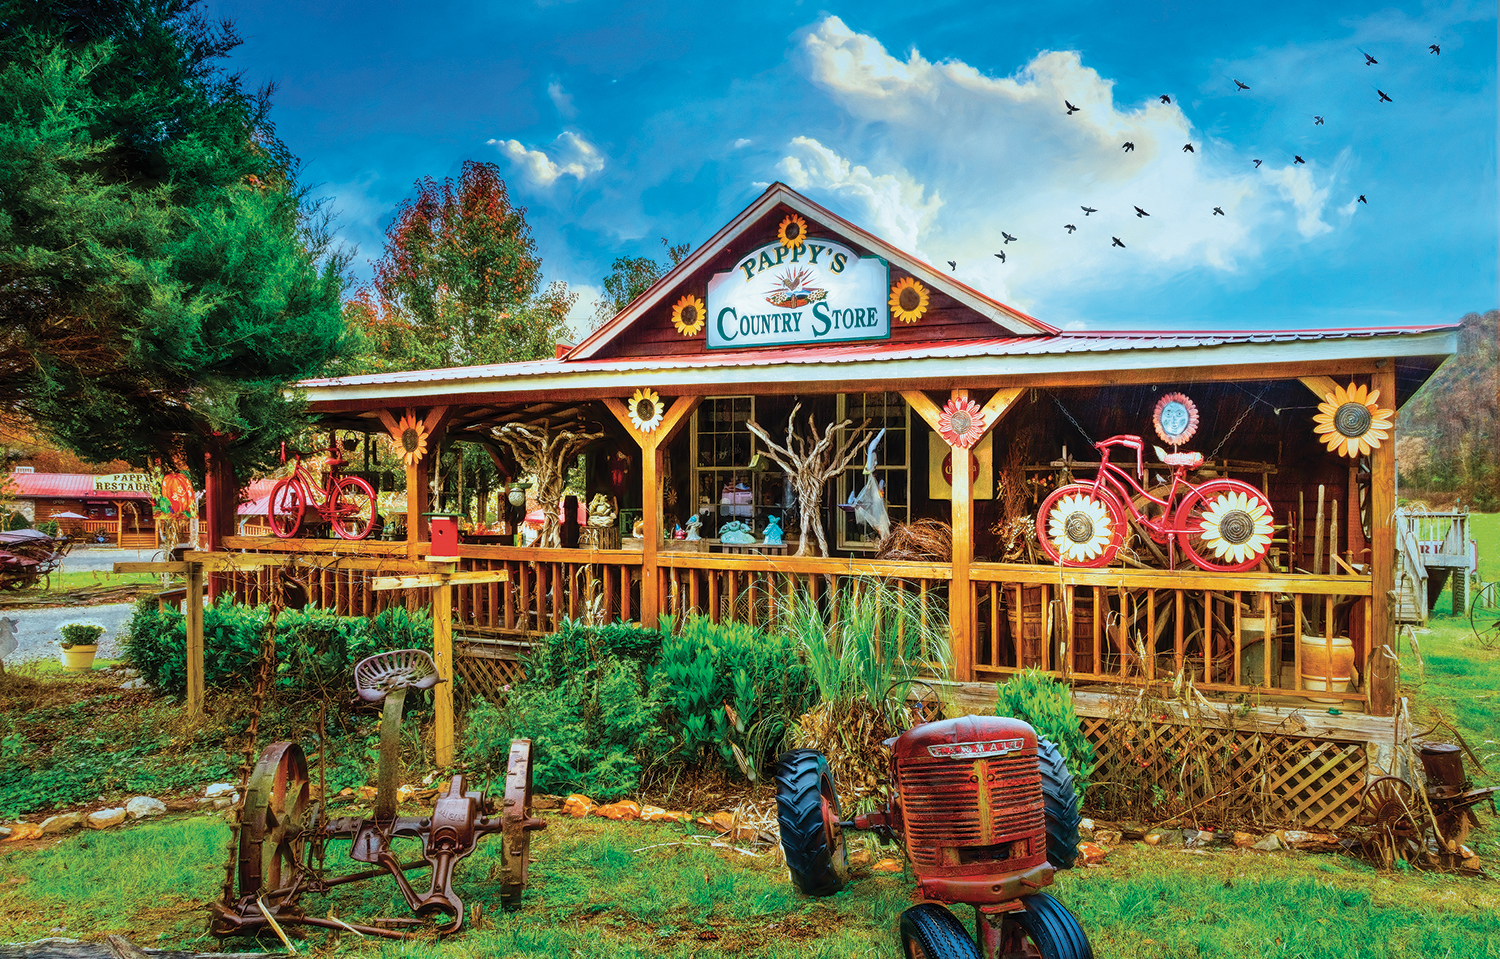 Pappy's General Store